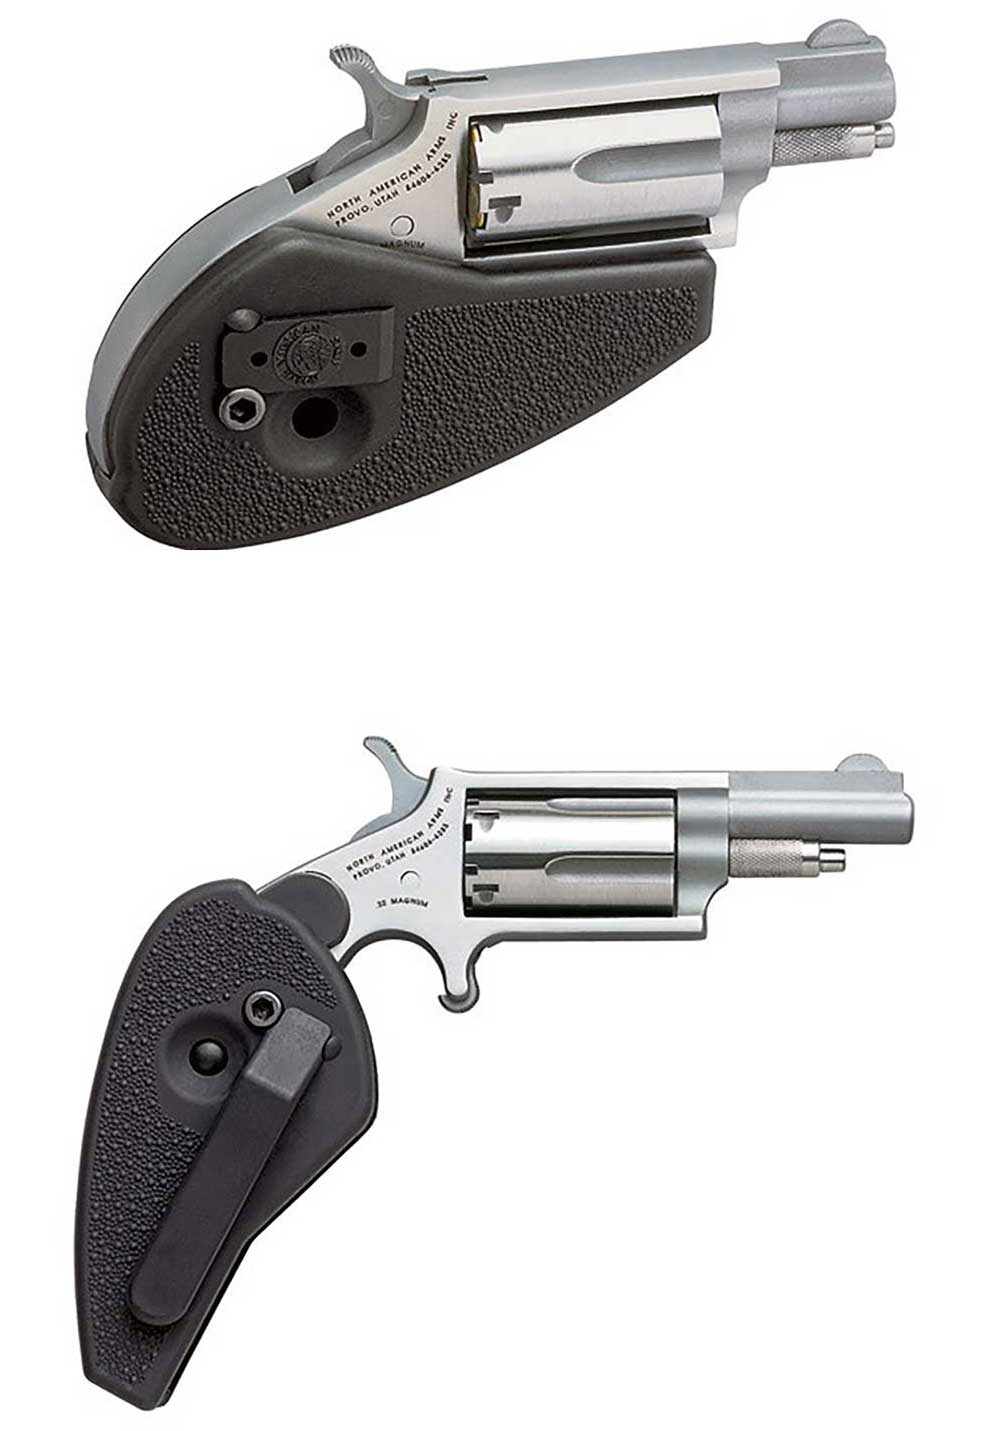 https://files.osgnetworks.tv/9/files/2015/09/NAA-pocket-pistol-meld.jpg